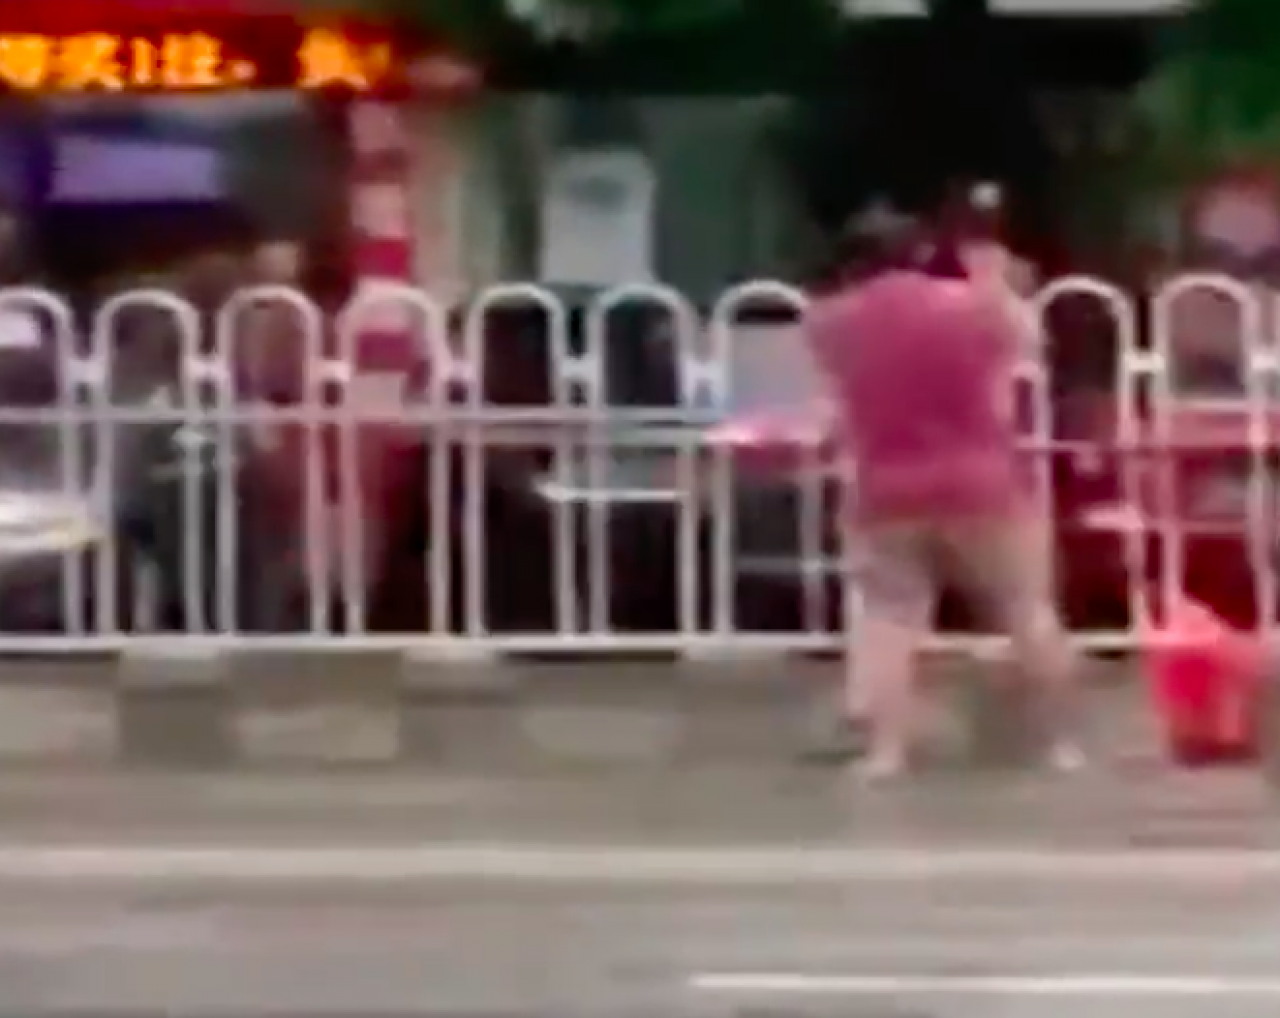 Man caught hacking through traffic barriers to create shortcut in Foshan, China